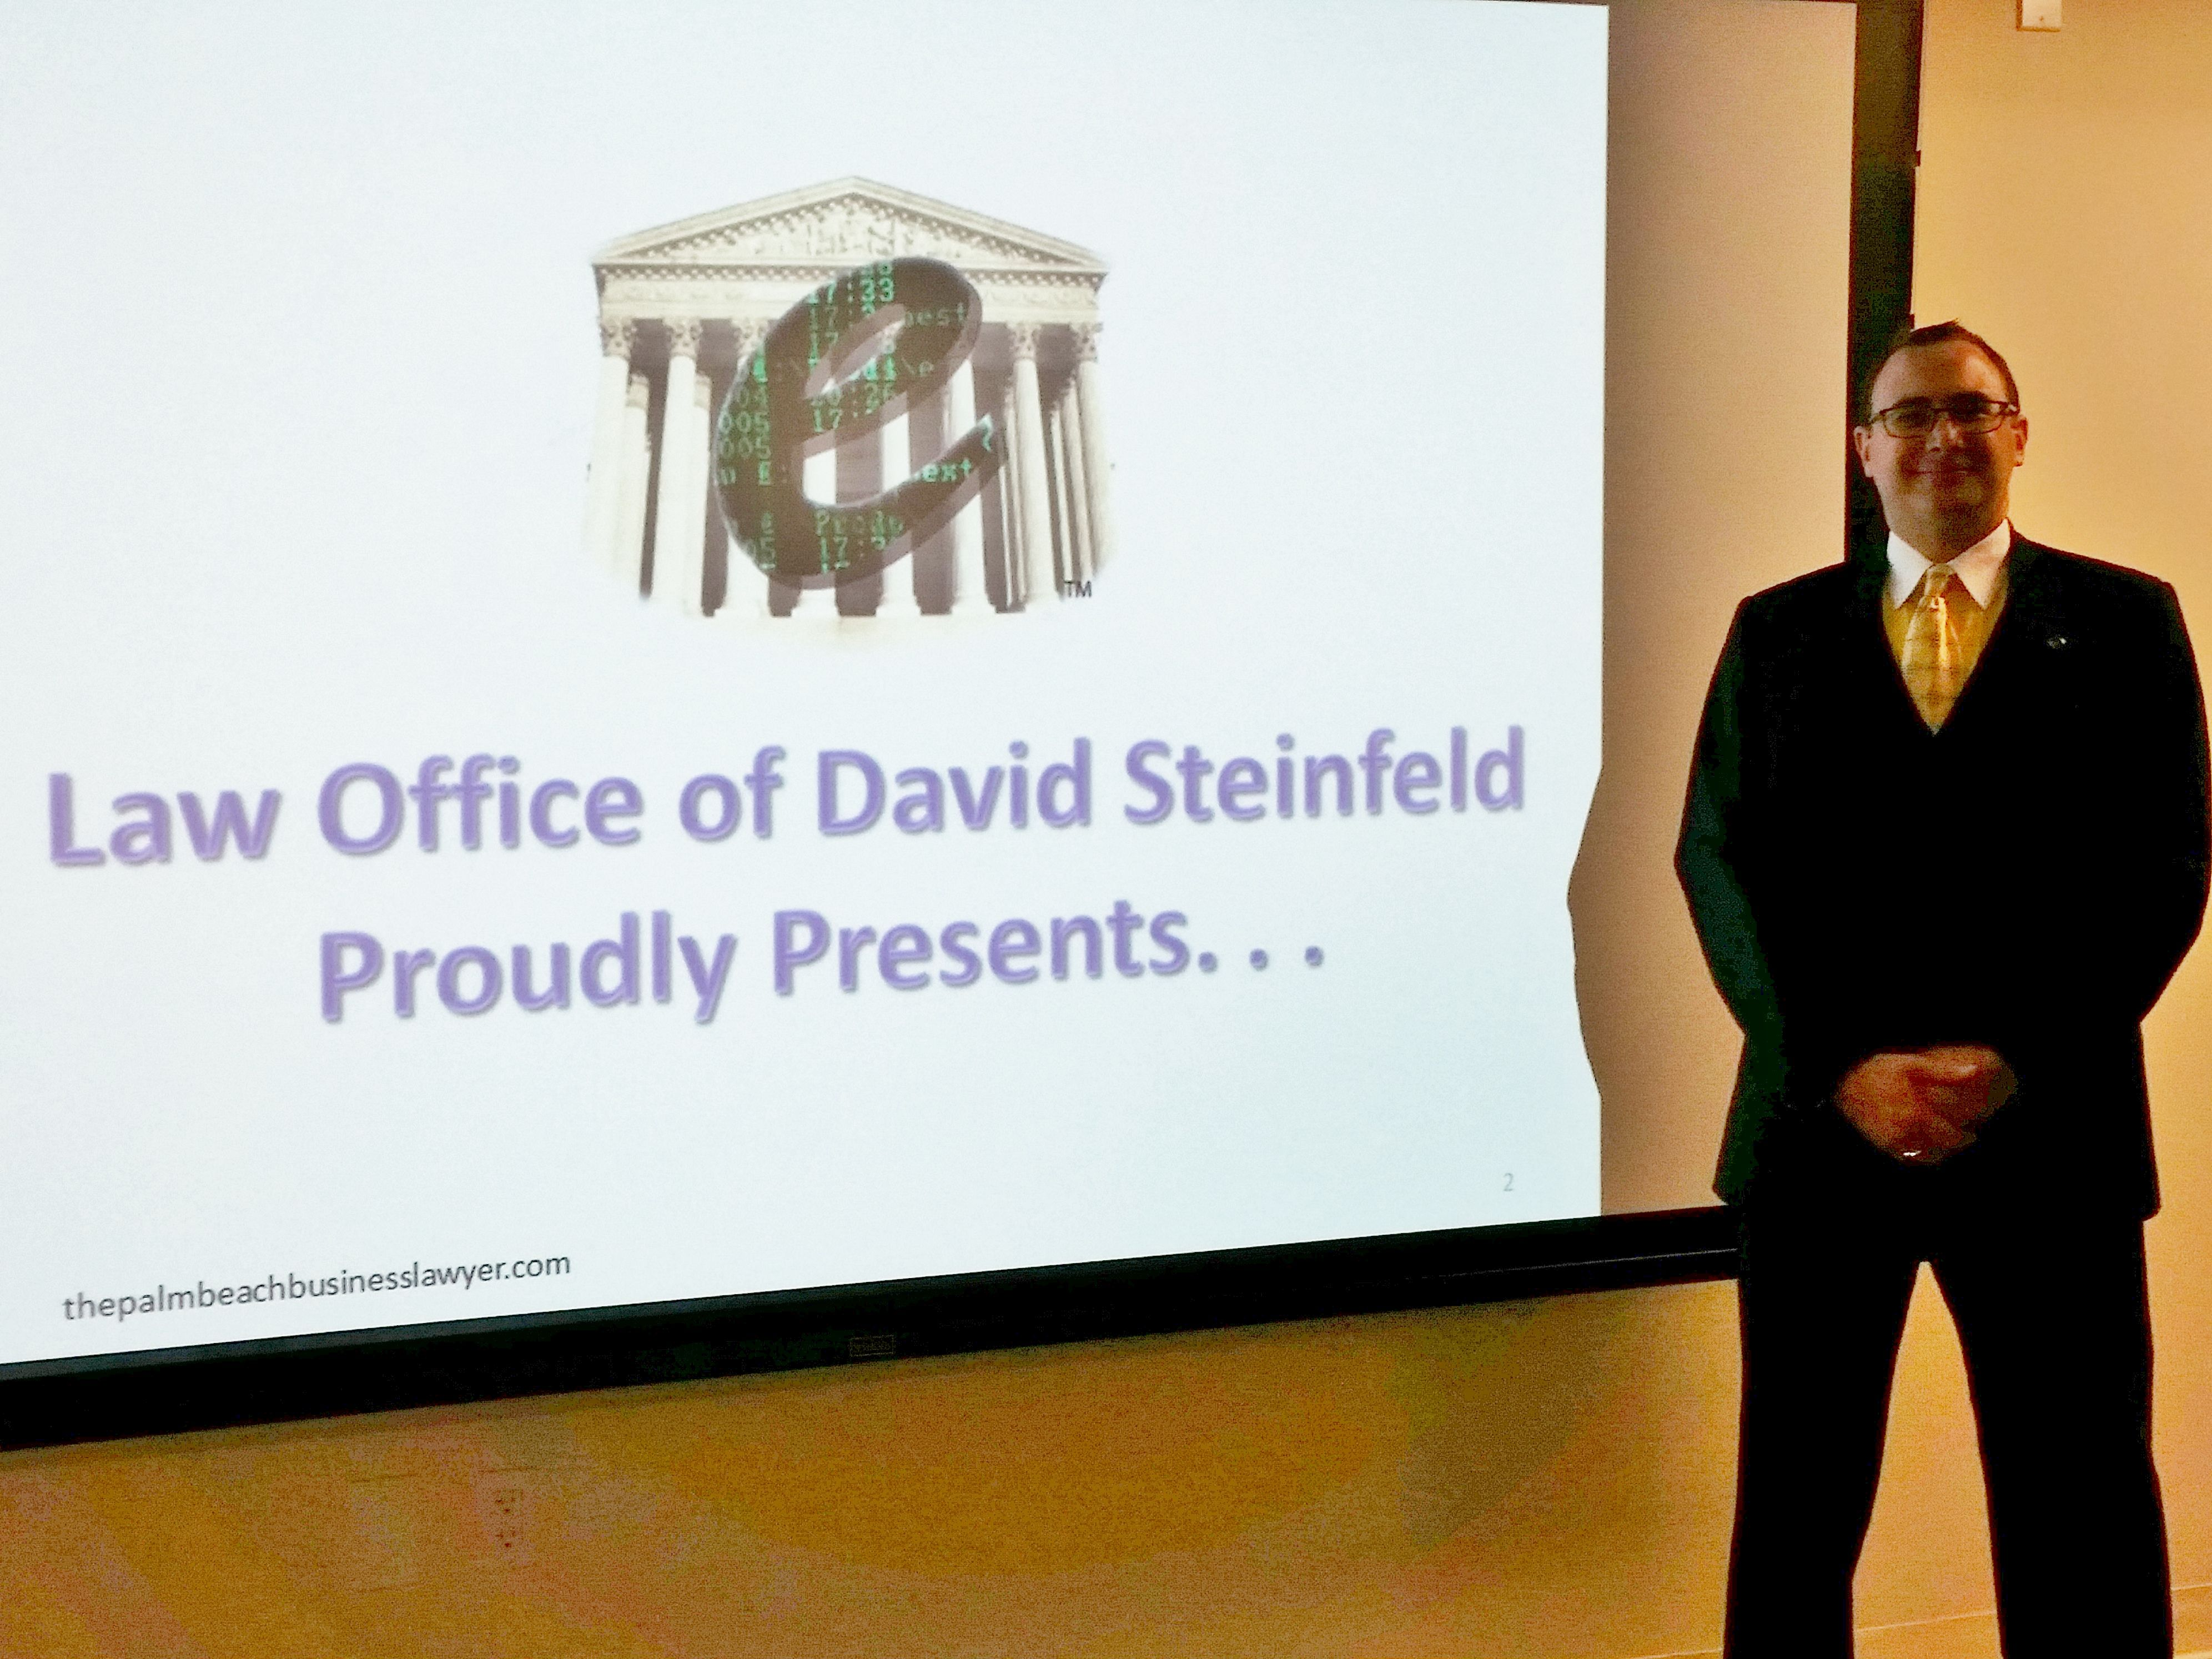 """david steinfeldï ¿ presented """"ethics in e discovery"""" to about 25"""